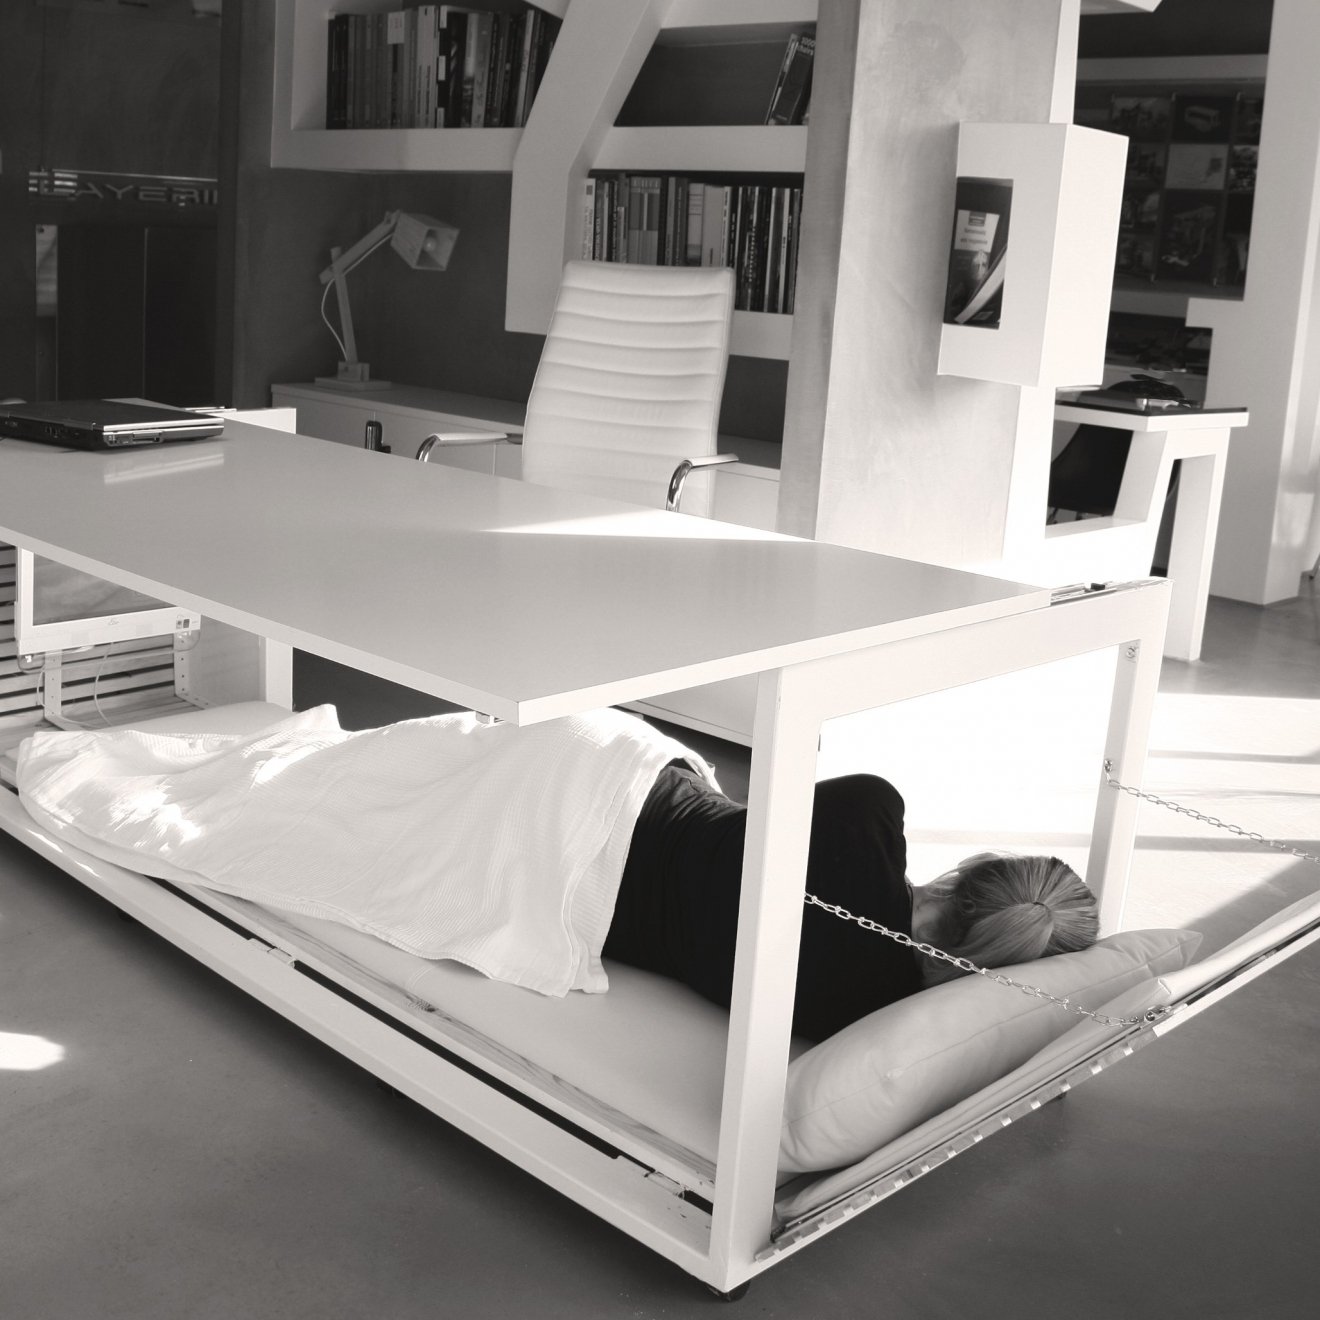 sleeping under a convertible desk